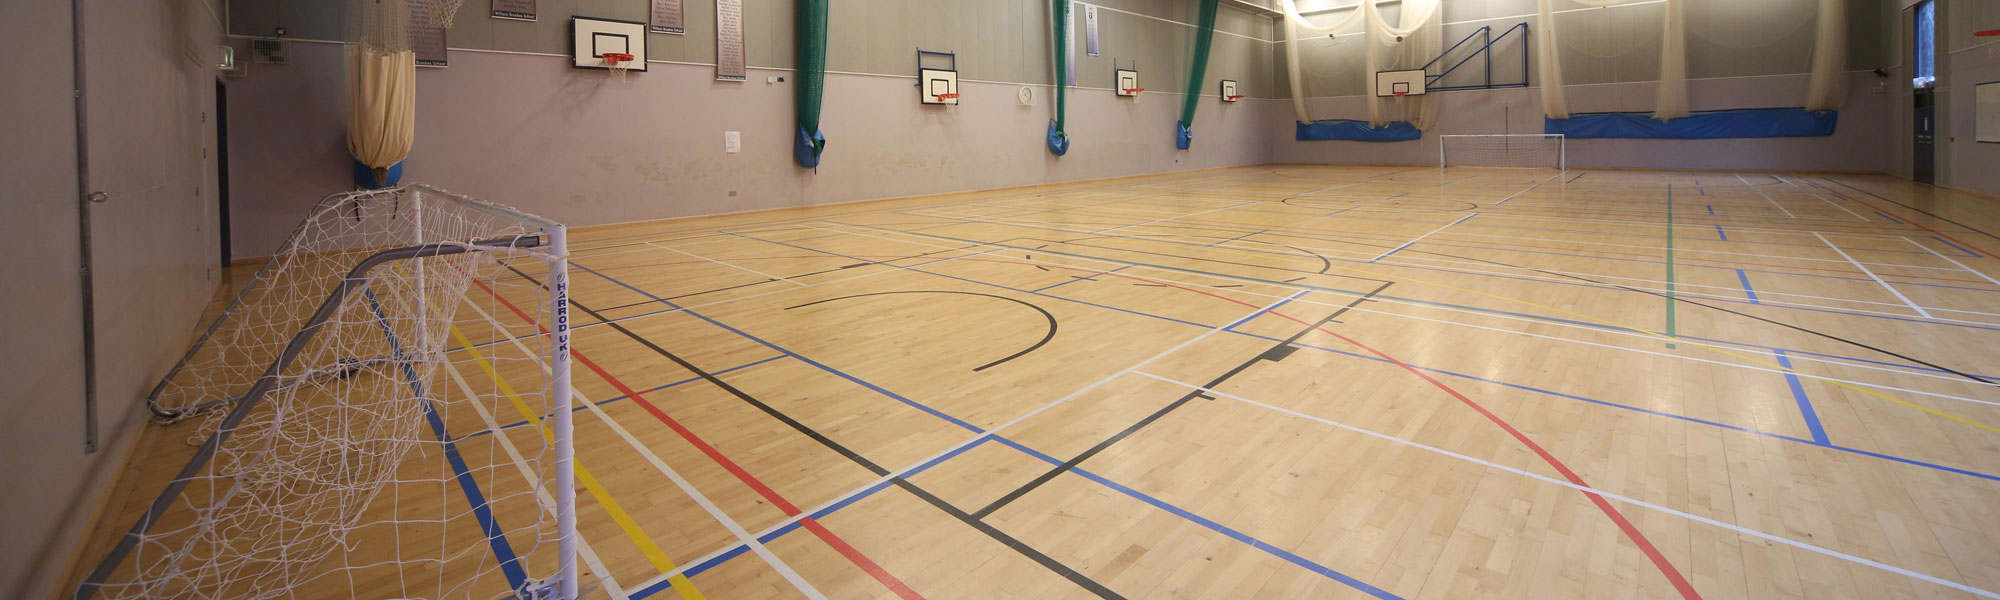 William Brookes School sportshall